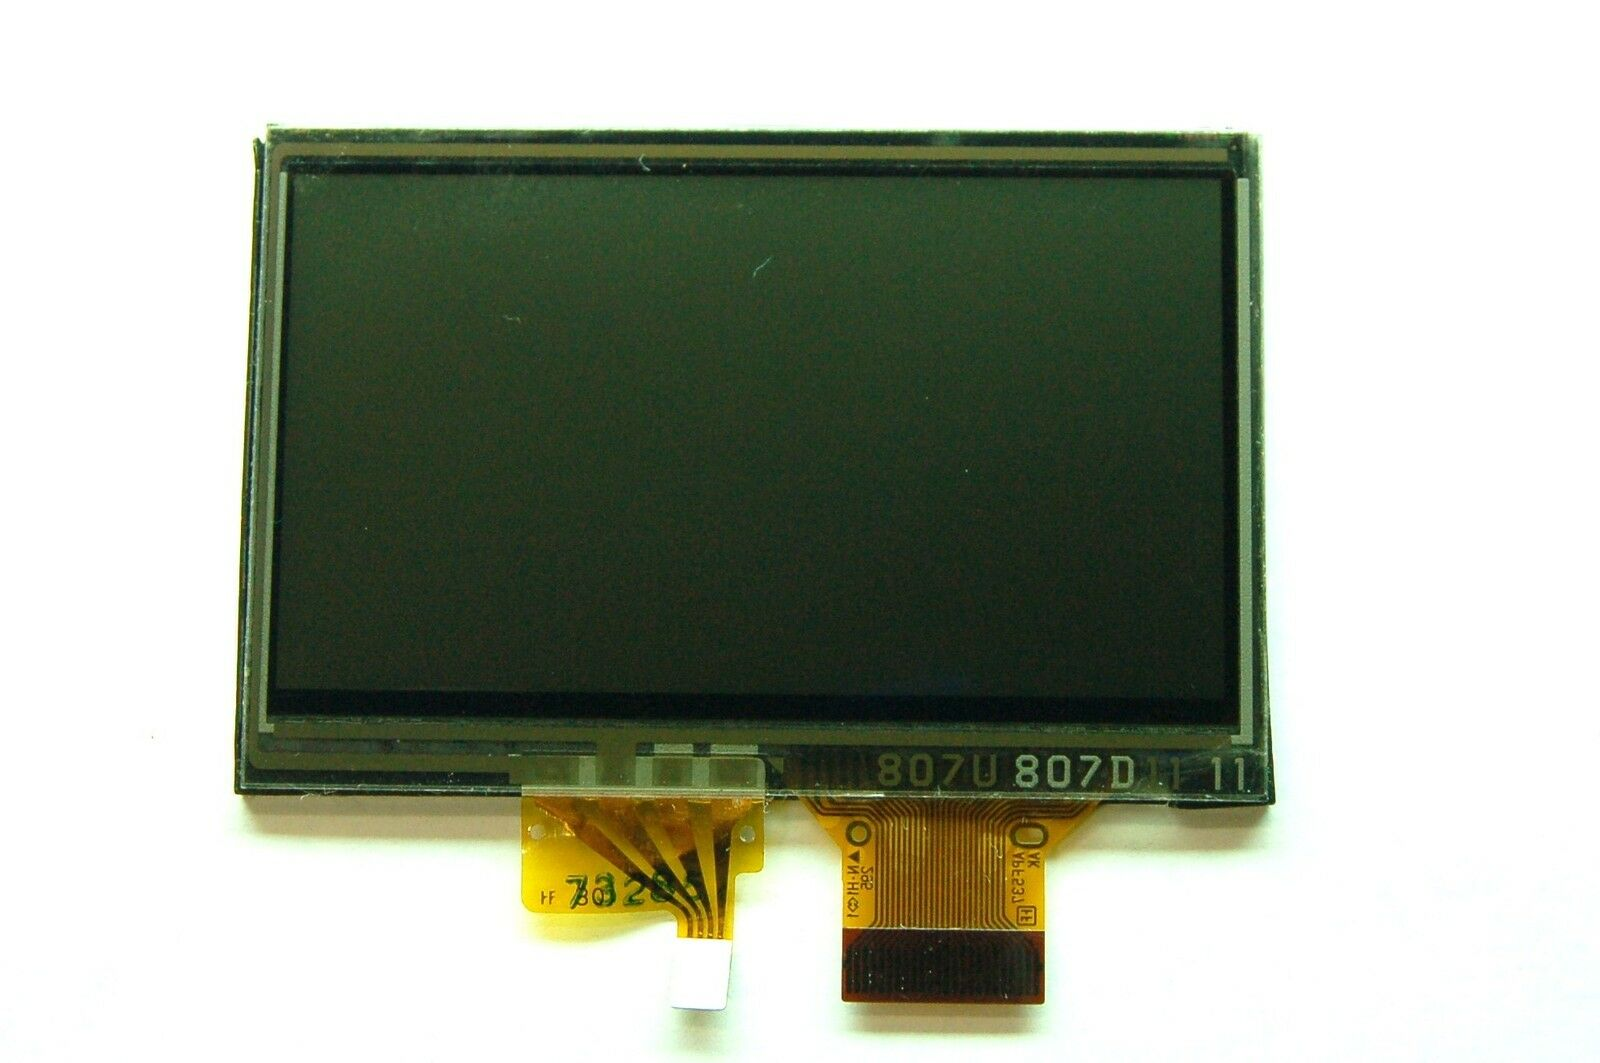 Sony Dcr-sr300 Lcd Display Monitor Screen + Touch Panel